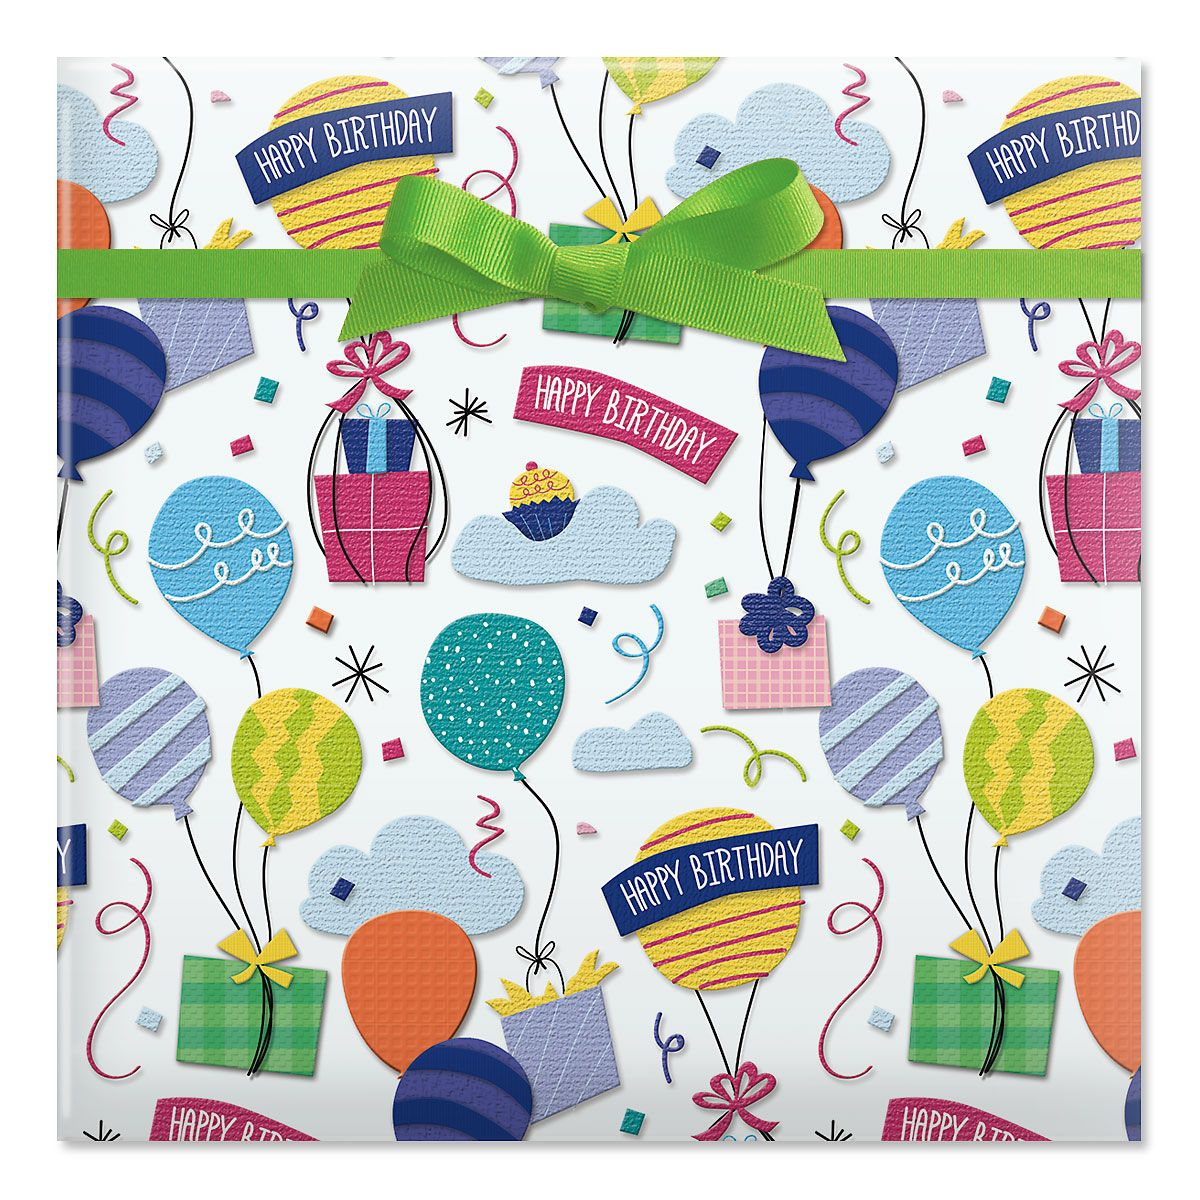 Birthday Gifts Jumbo Rolled Gift Wrap